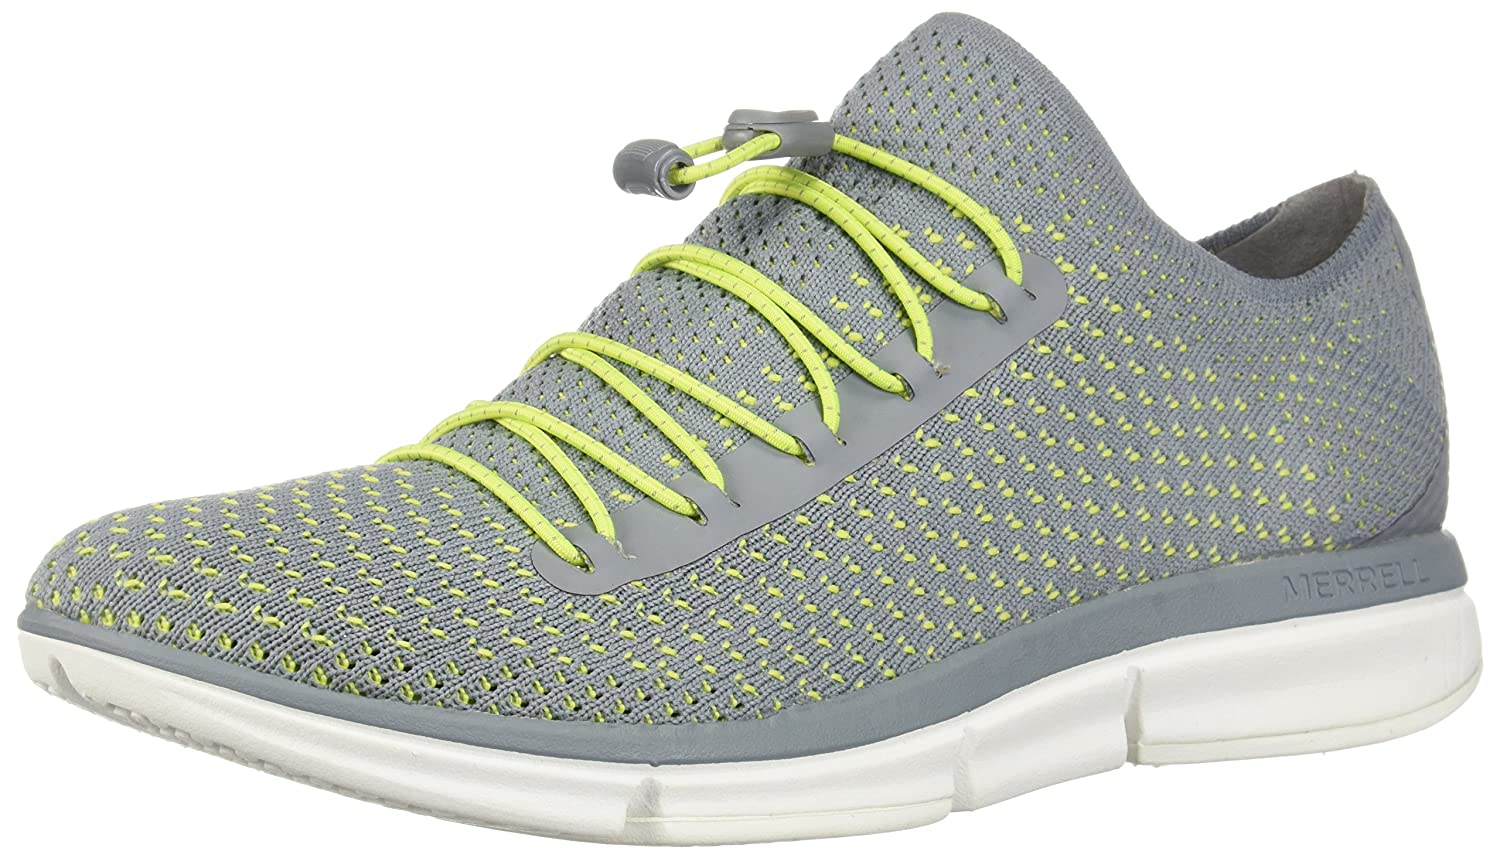 Merrell Womens/Ladies Zoe Lace Sojourn Womens/Ladies Lace Knit Q2 Trainers Lace-up Trainers Shoes Monument 2985893 - piero.space